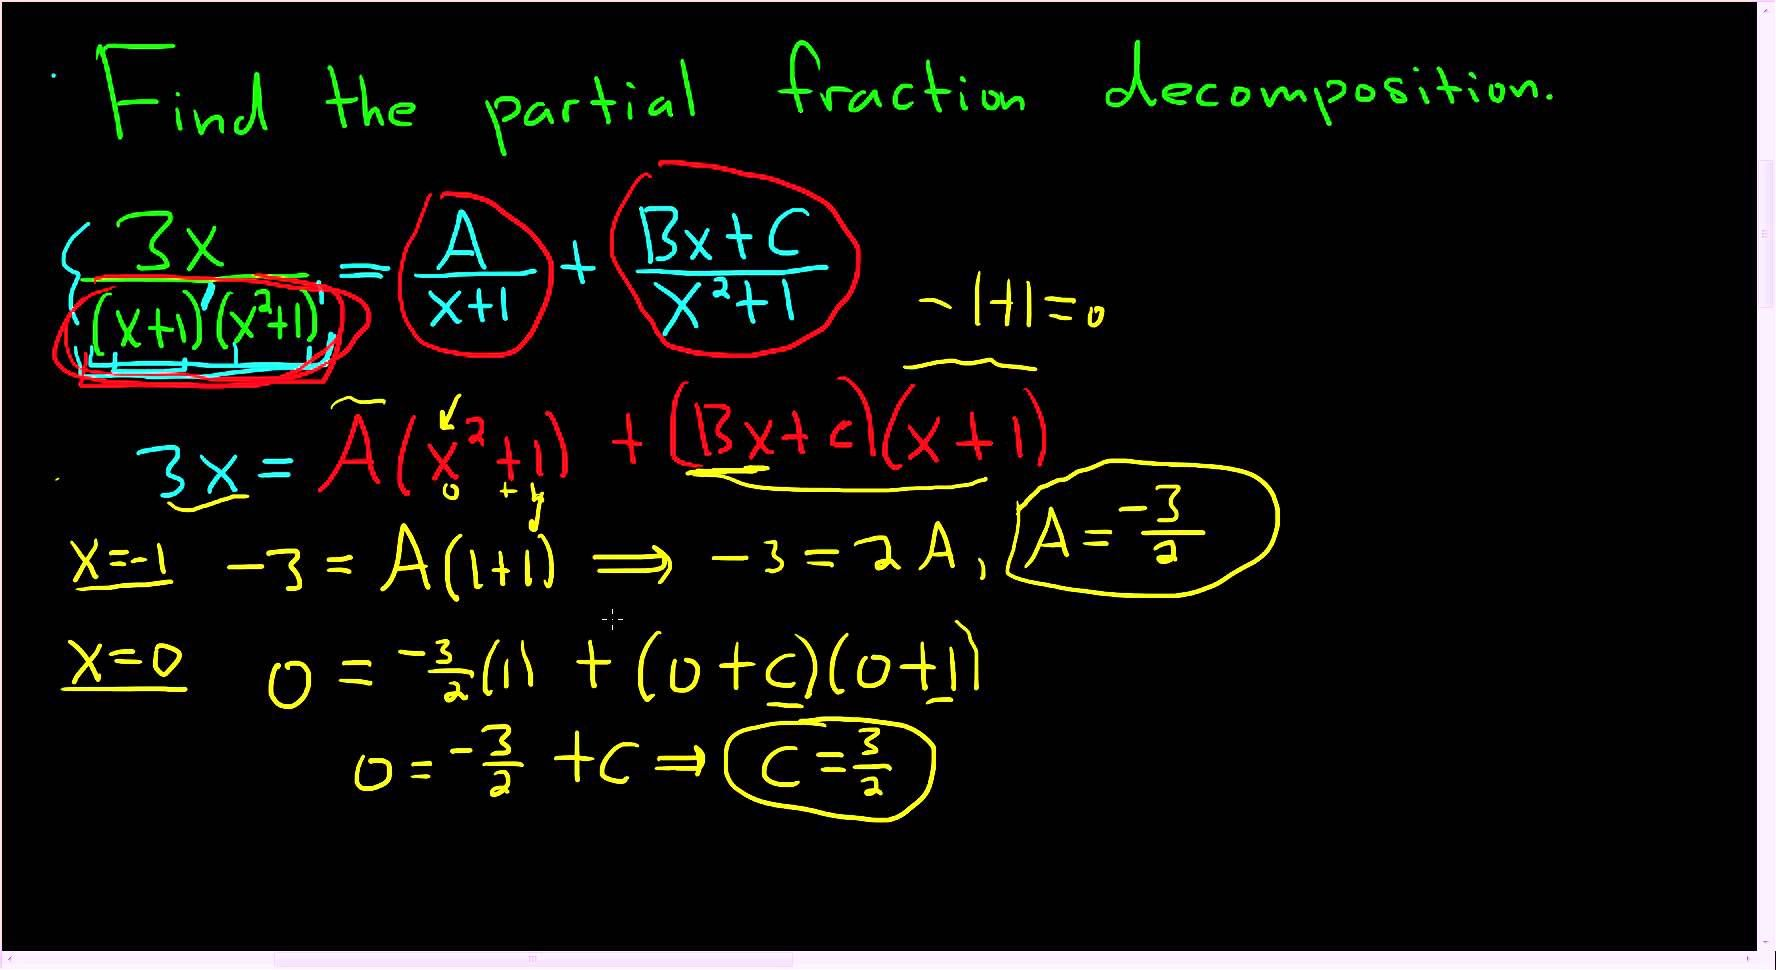 Find the partial fraction 3xx 1x2